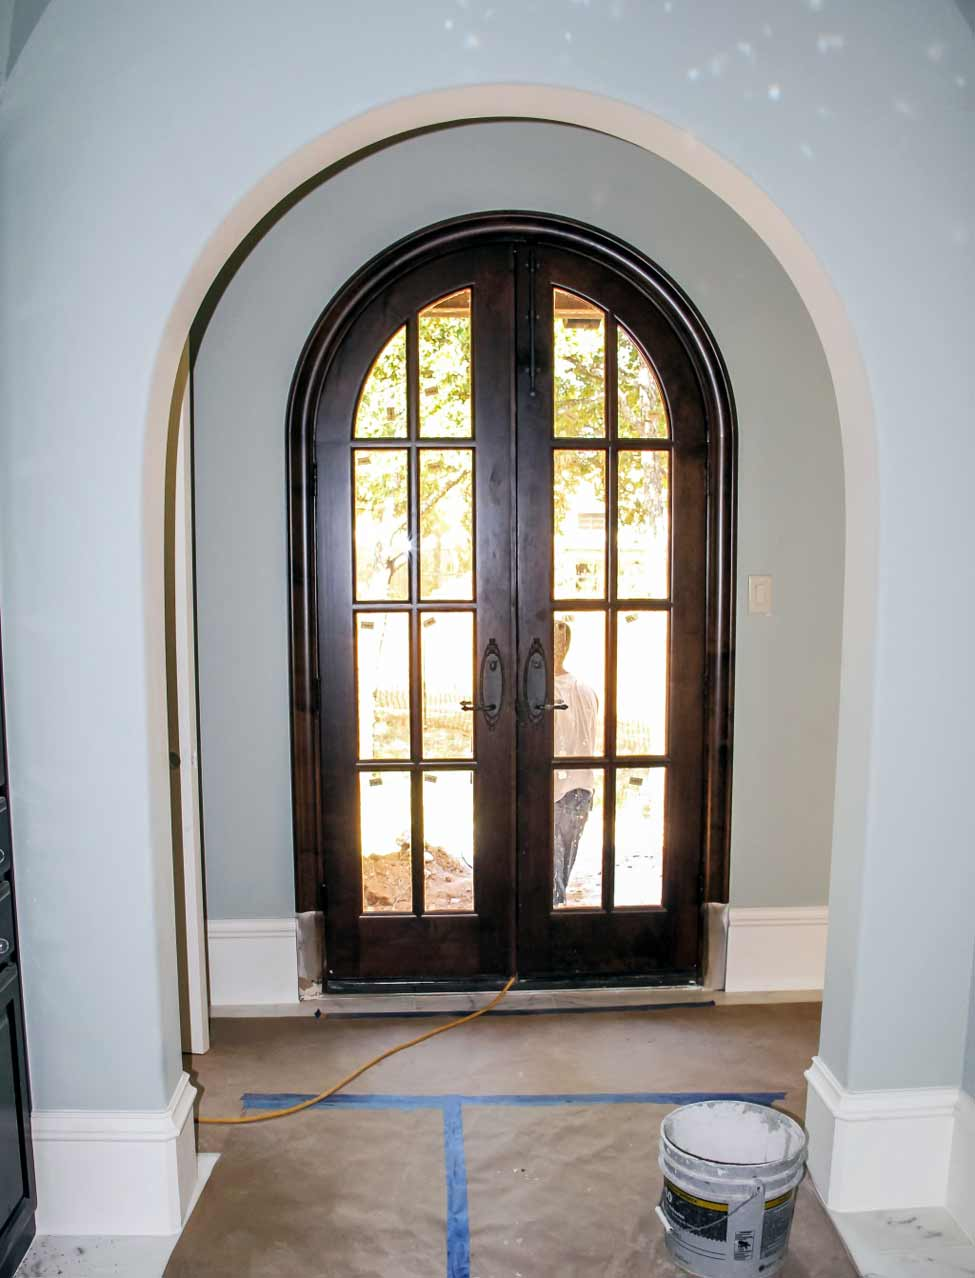 Half circle arch entry with arched wooden door